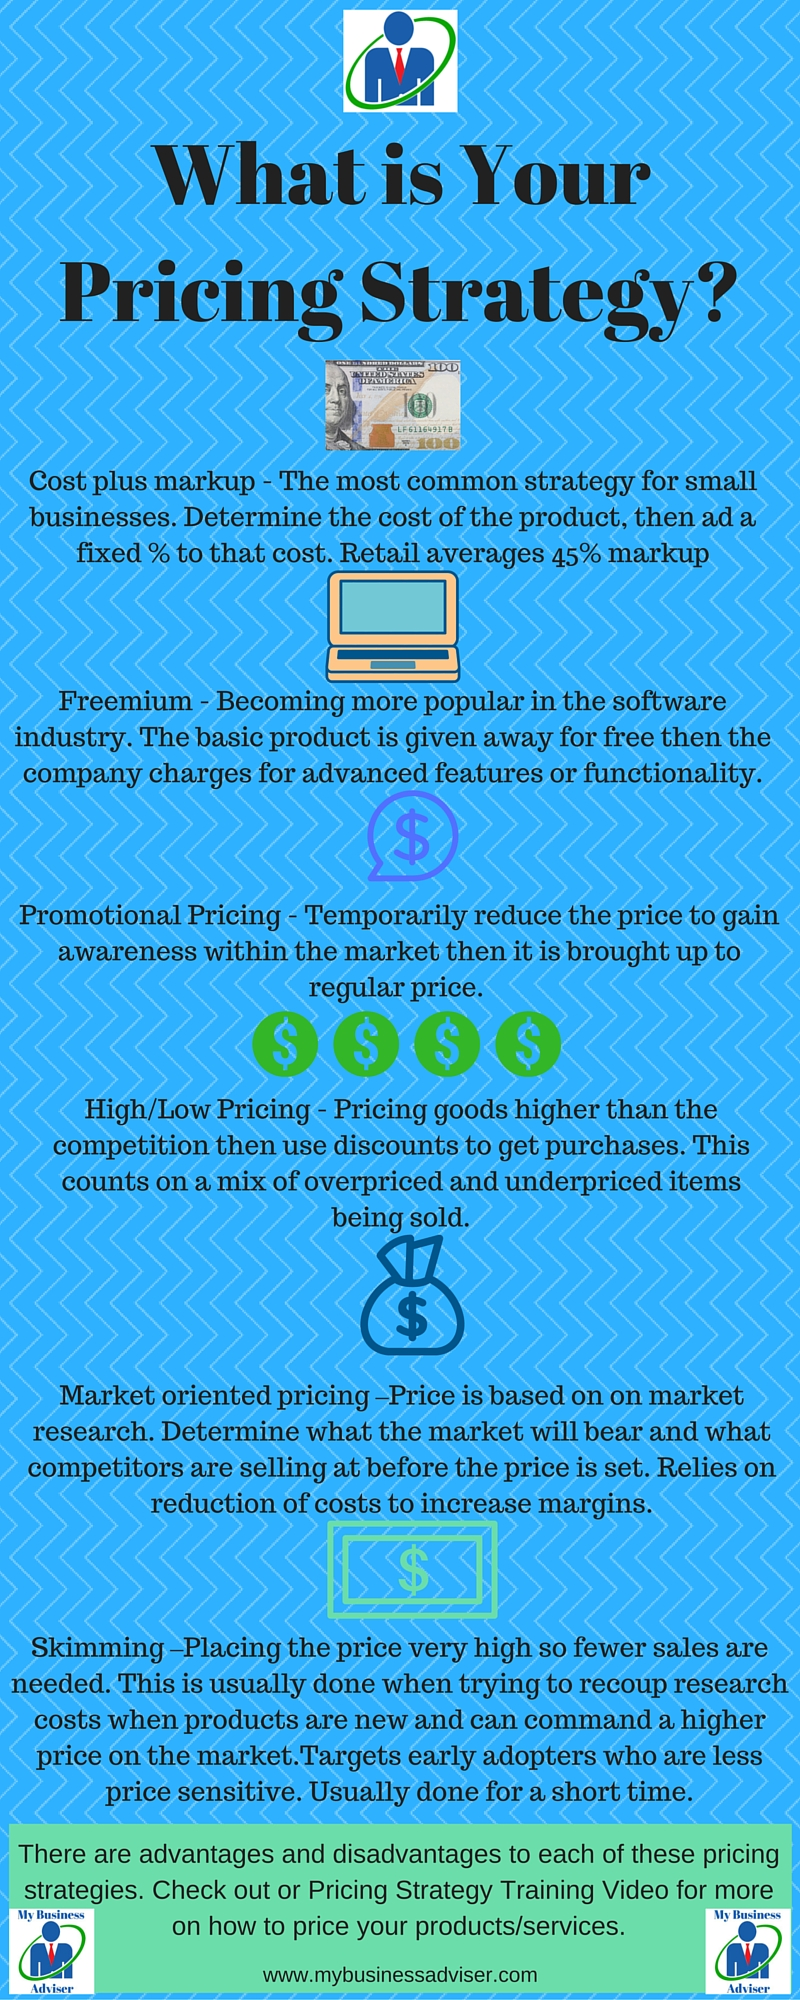 What is Your Pricing Strategy